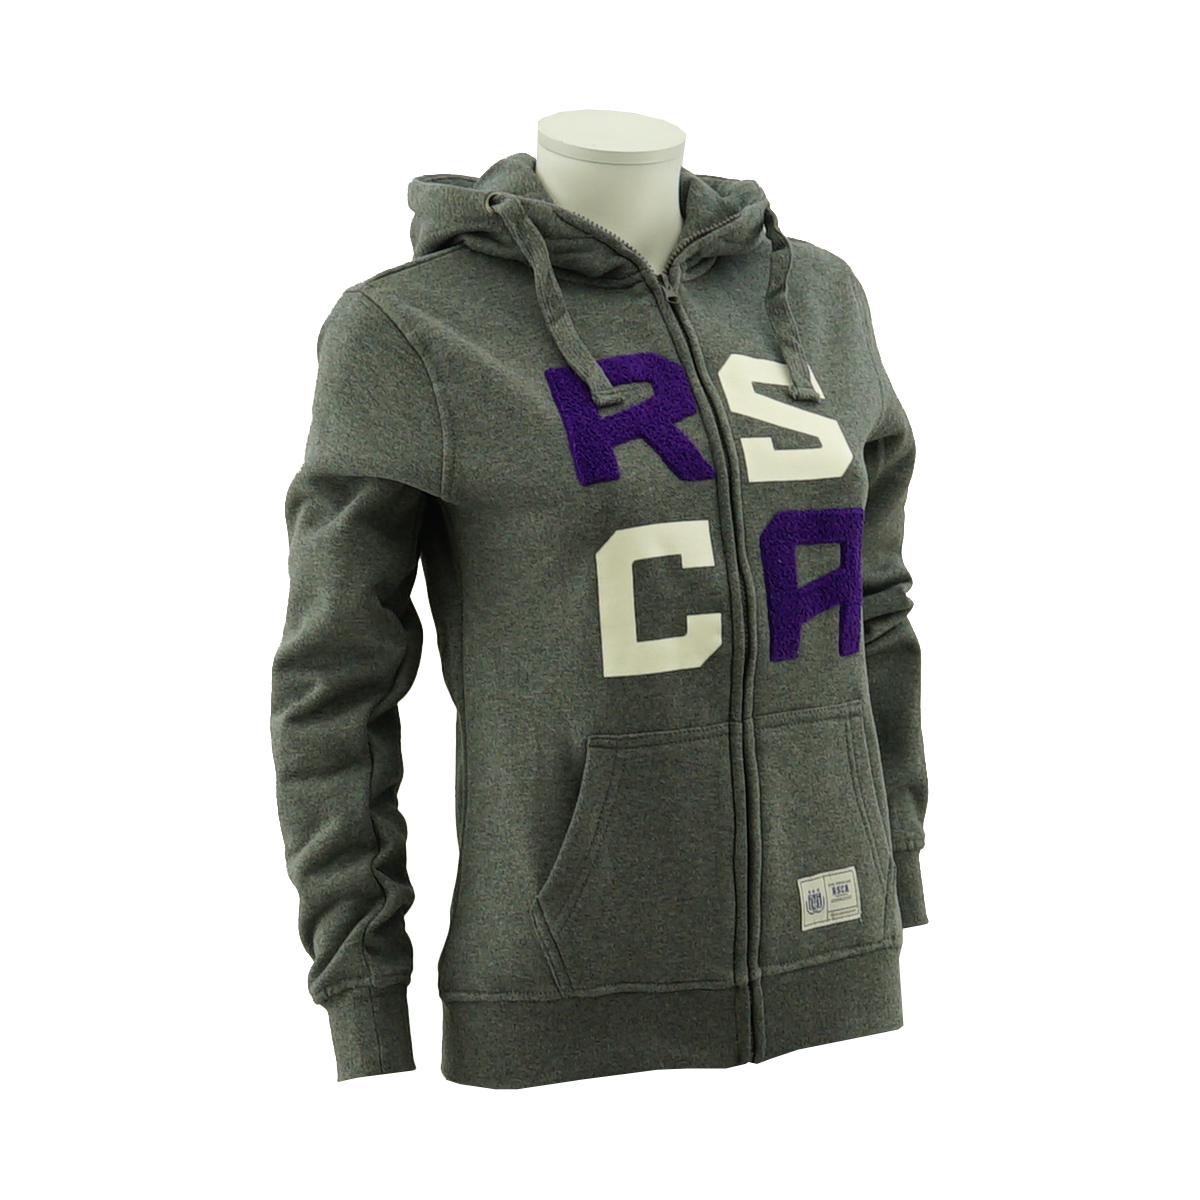 RSCA Hooded Sweatvest Women Terry Letters